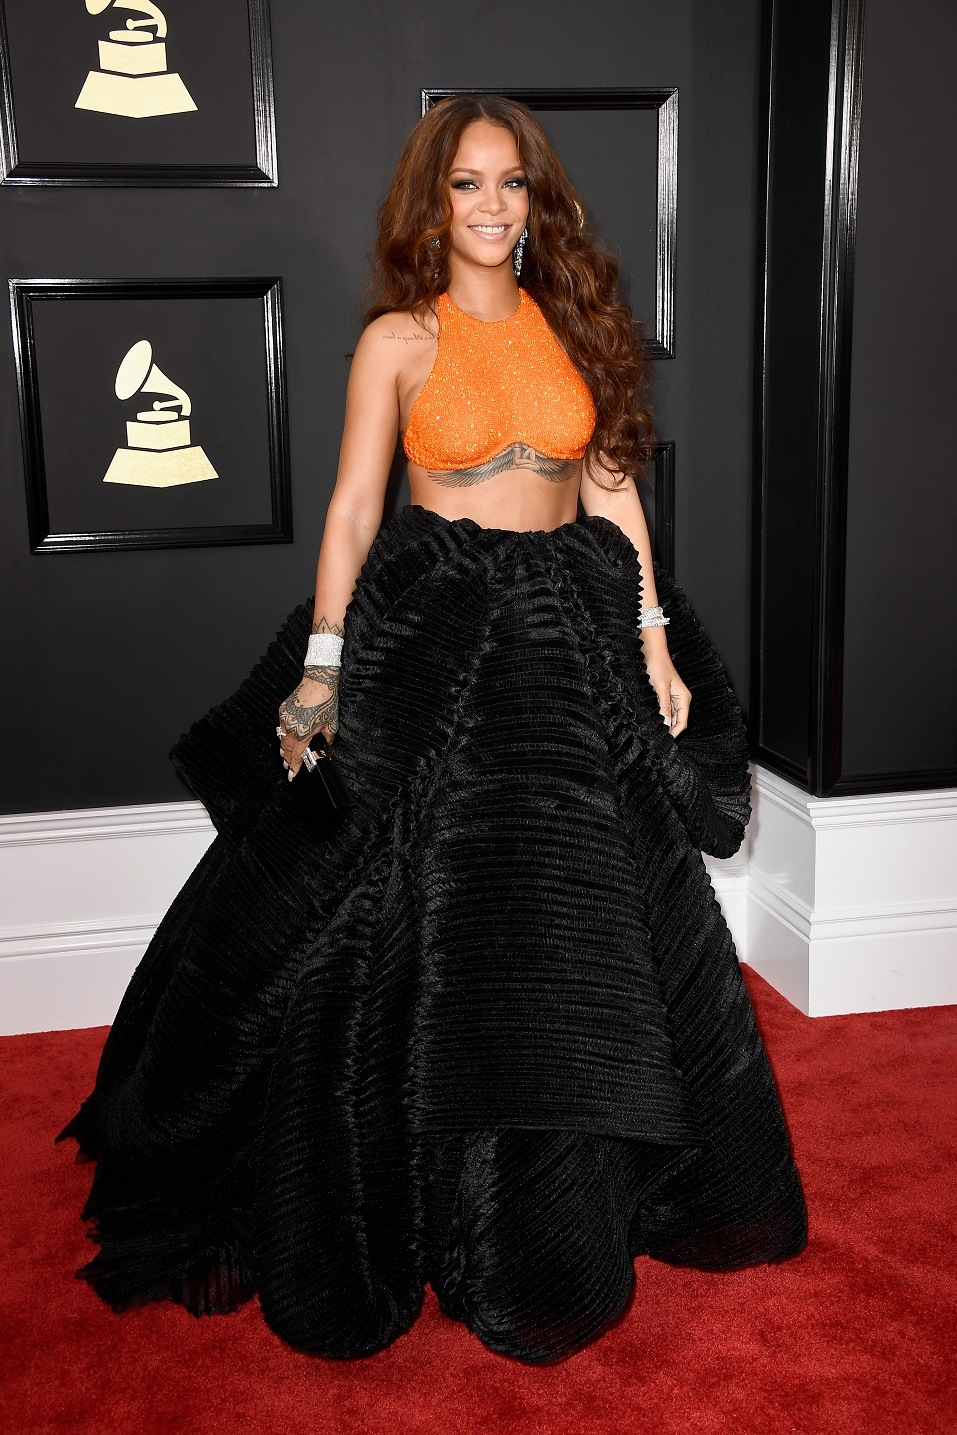 Singer Rihanna attends The 59th GRAMMY Awards